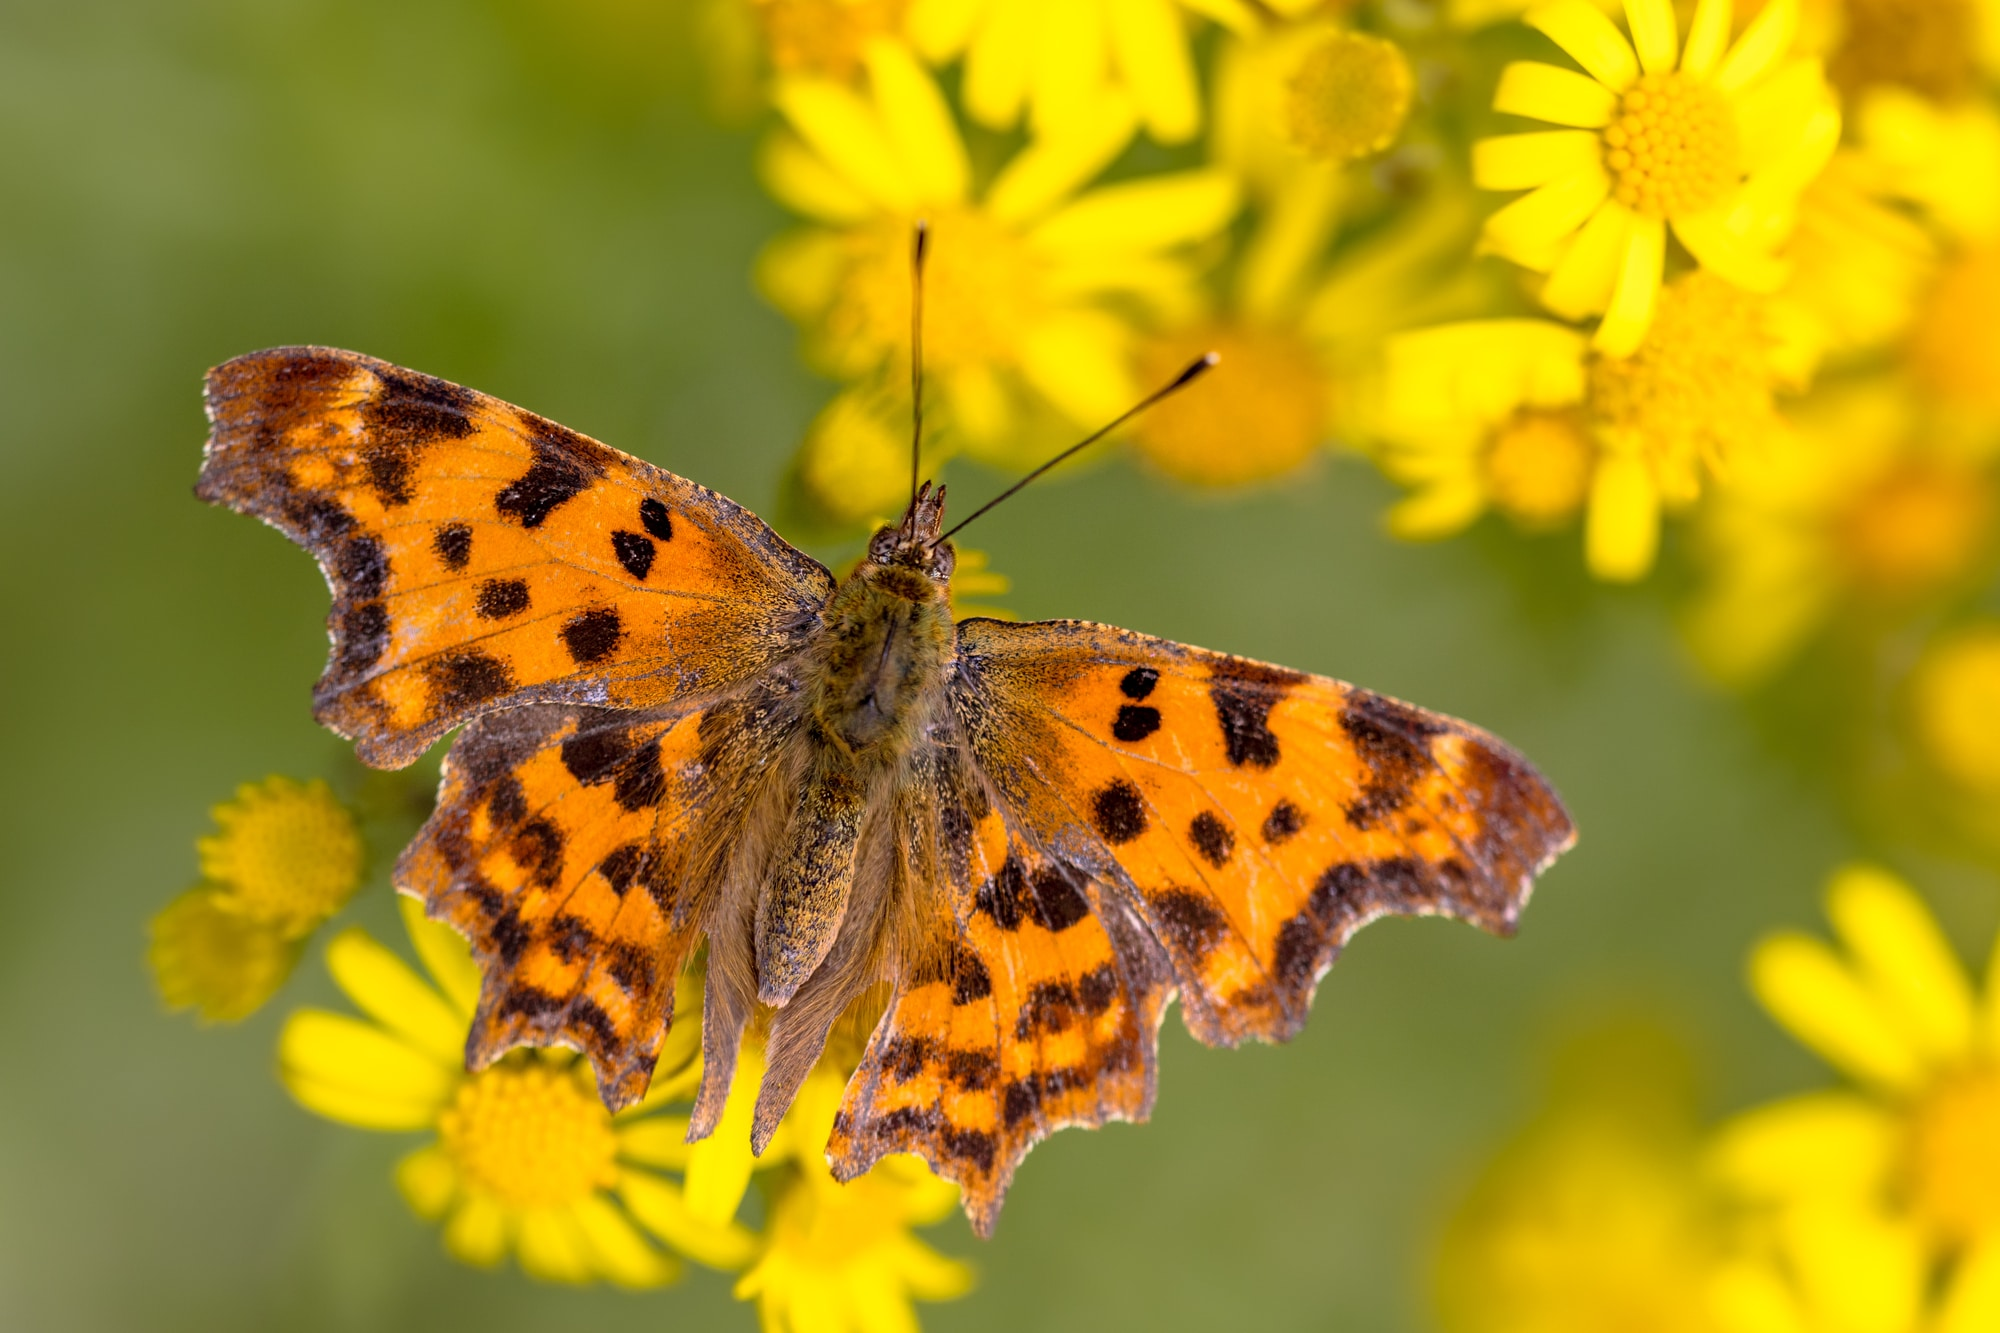 Comma butterfly (Polygonia c-album) drinking nectar on yellow flowers in the summer sun.